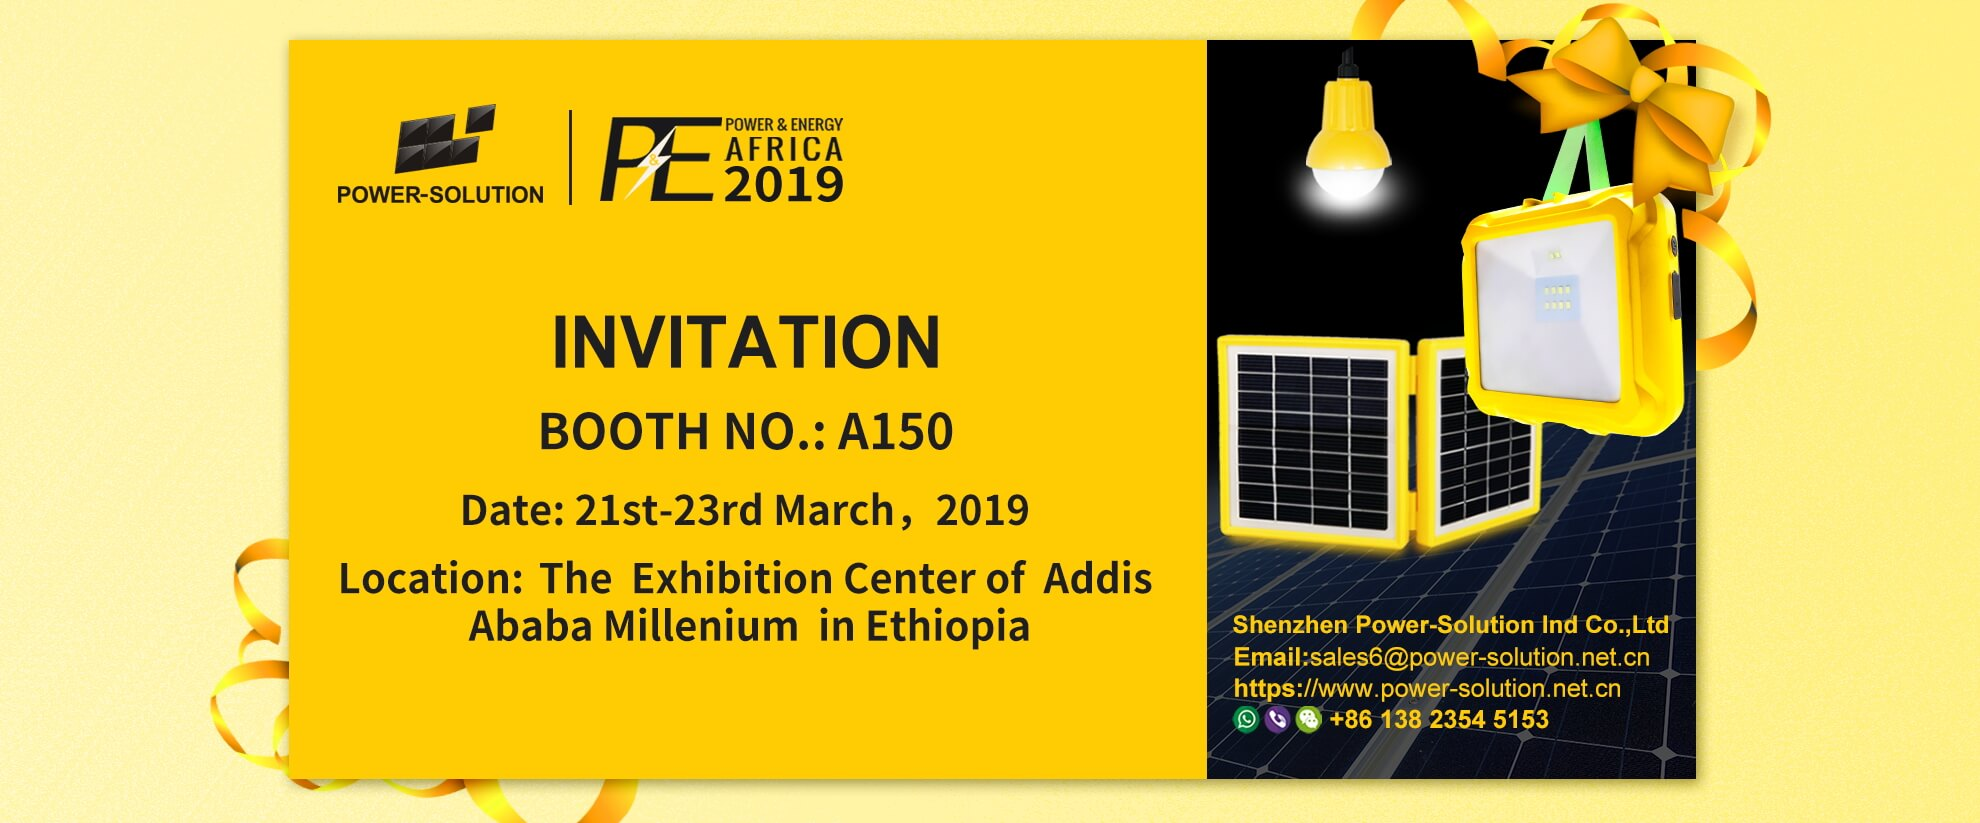 2019 POWER & ENERGY Exhibition in Ethiopia